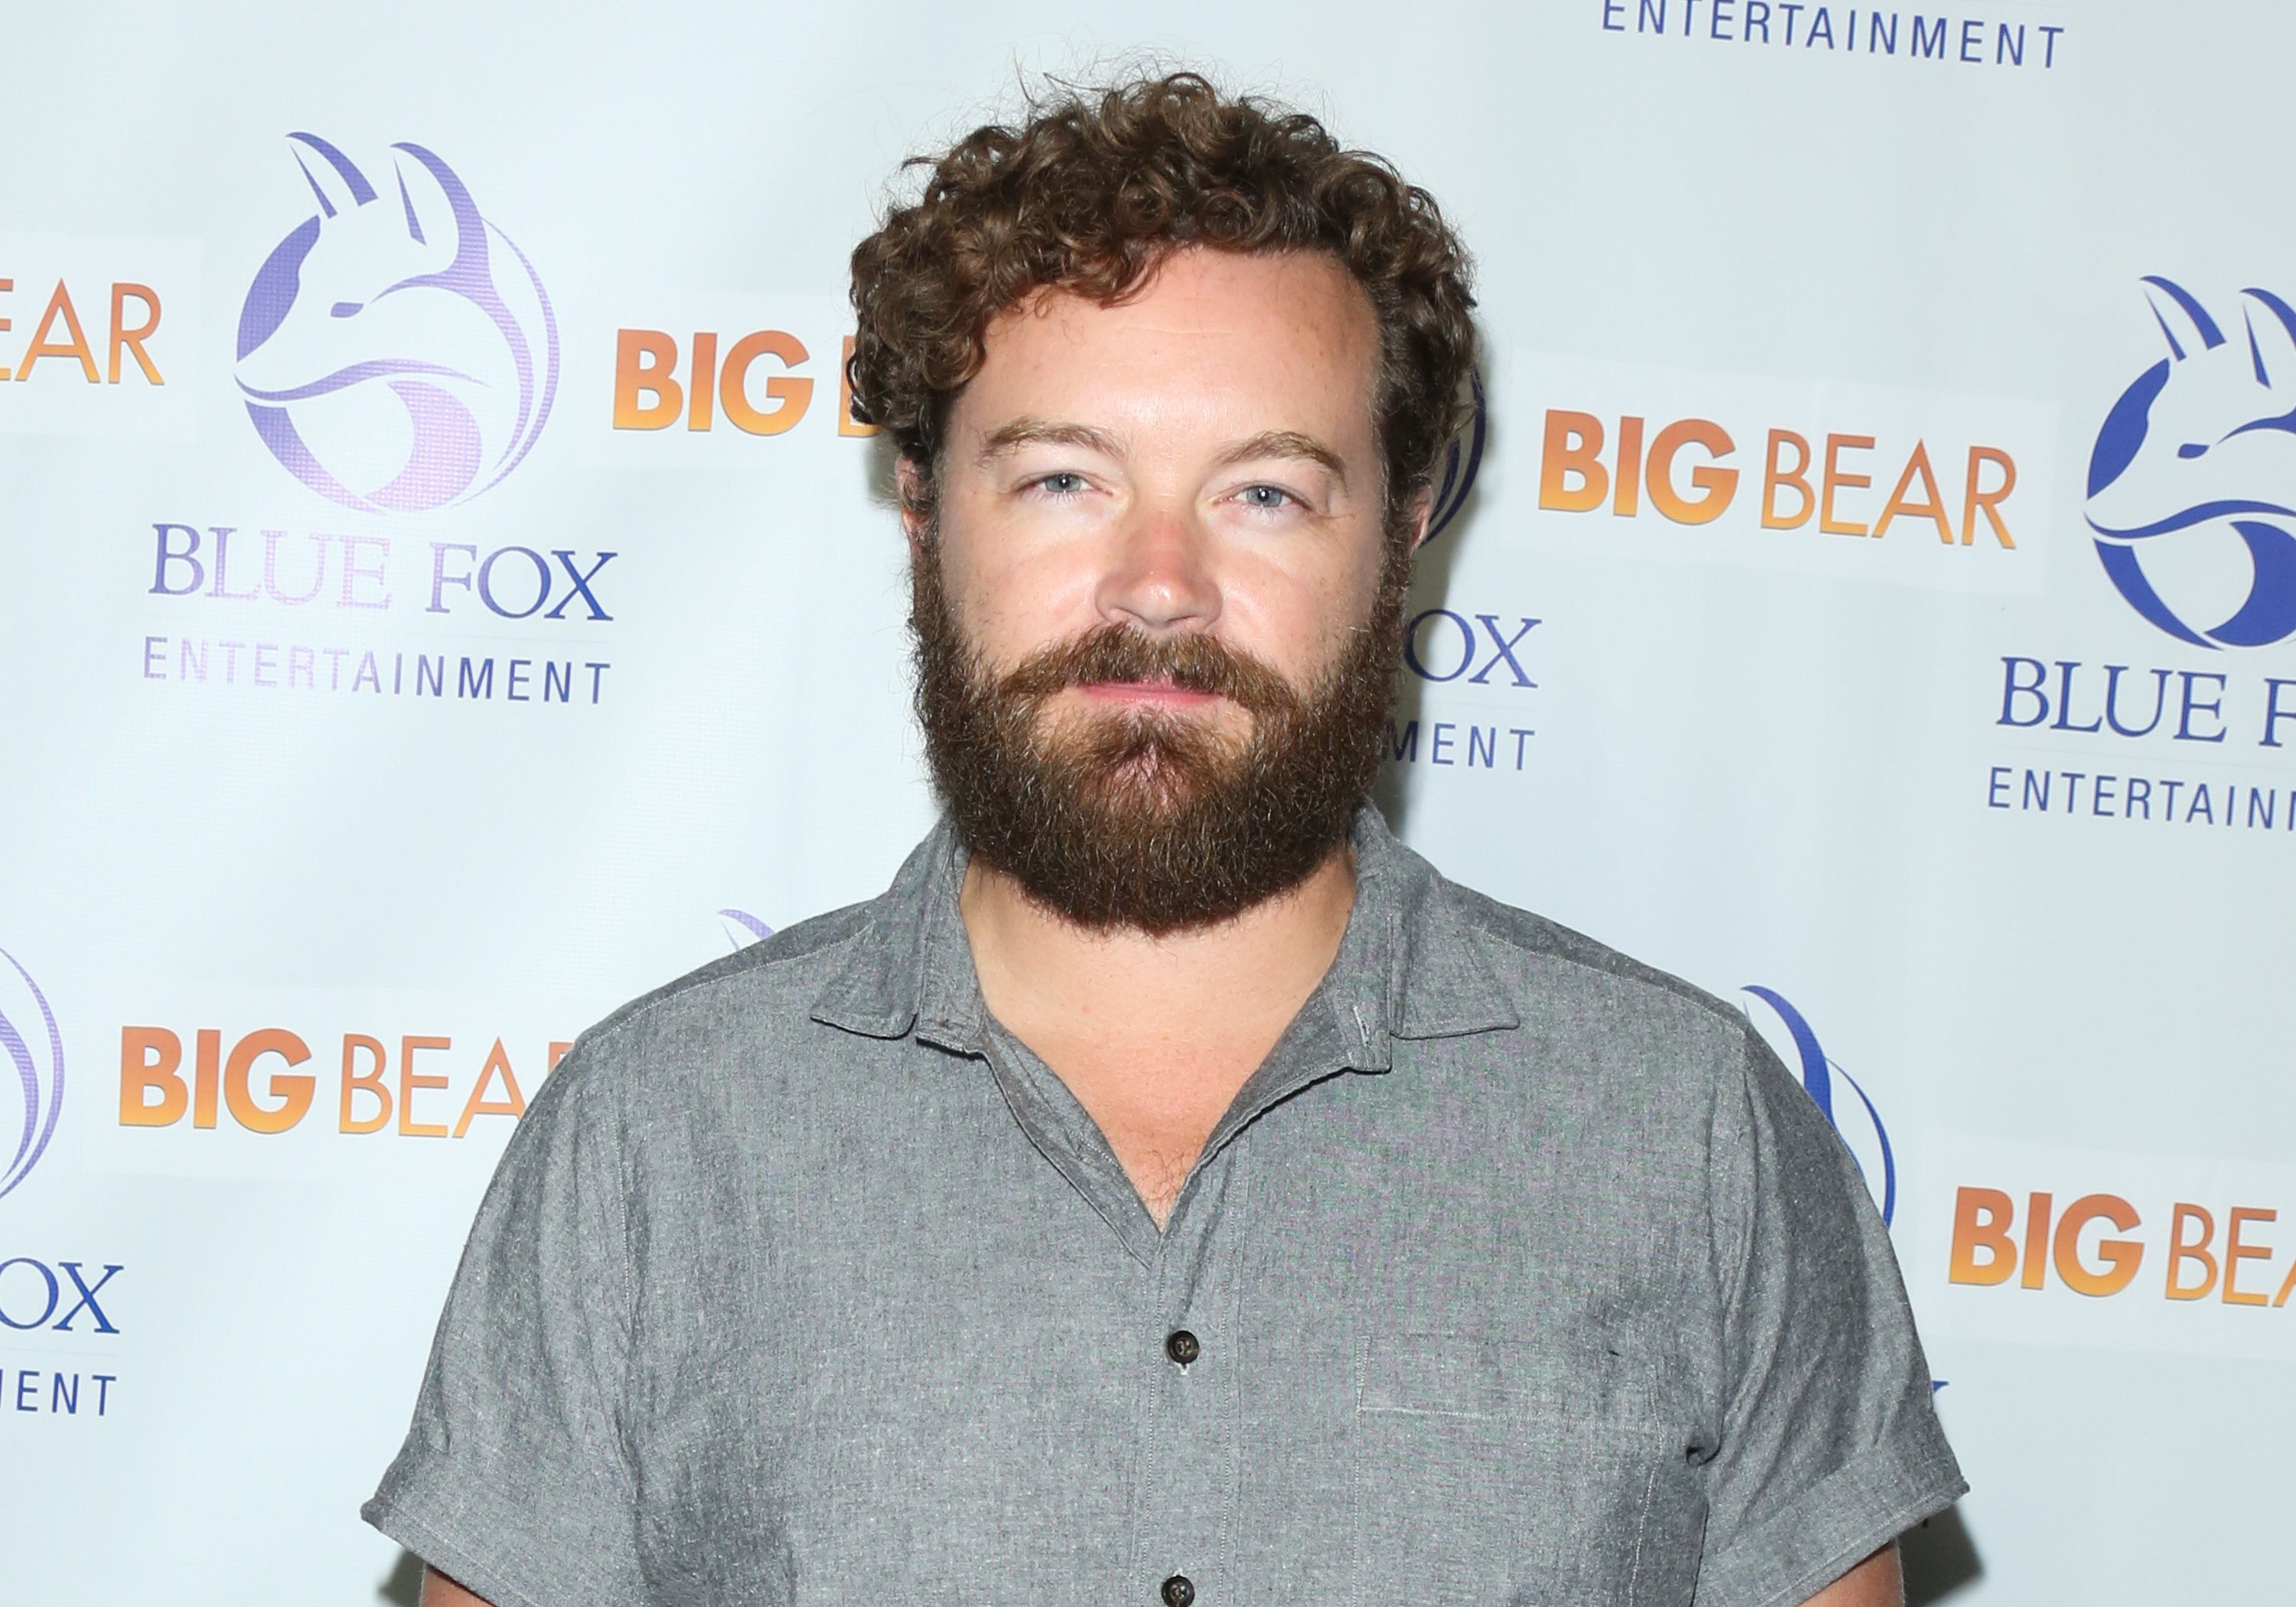 WEST HOLLYWOOD, CA - SEPTEMBER 19:  Actor Danny Masterson attends the premiere of 'Big Bear' at The London Hotel on September 19, 2017 in West Hollywood, California.  (Photo by Paul Archuleta/FilmMagic)